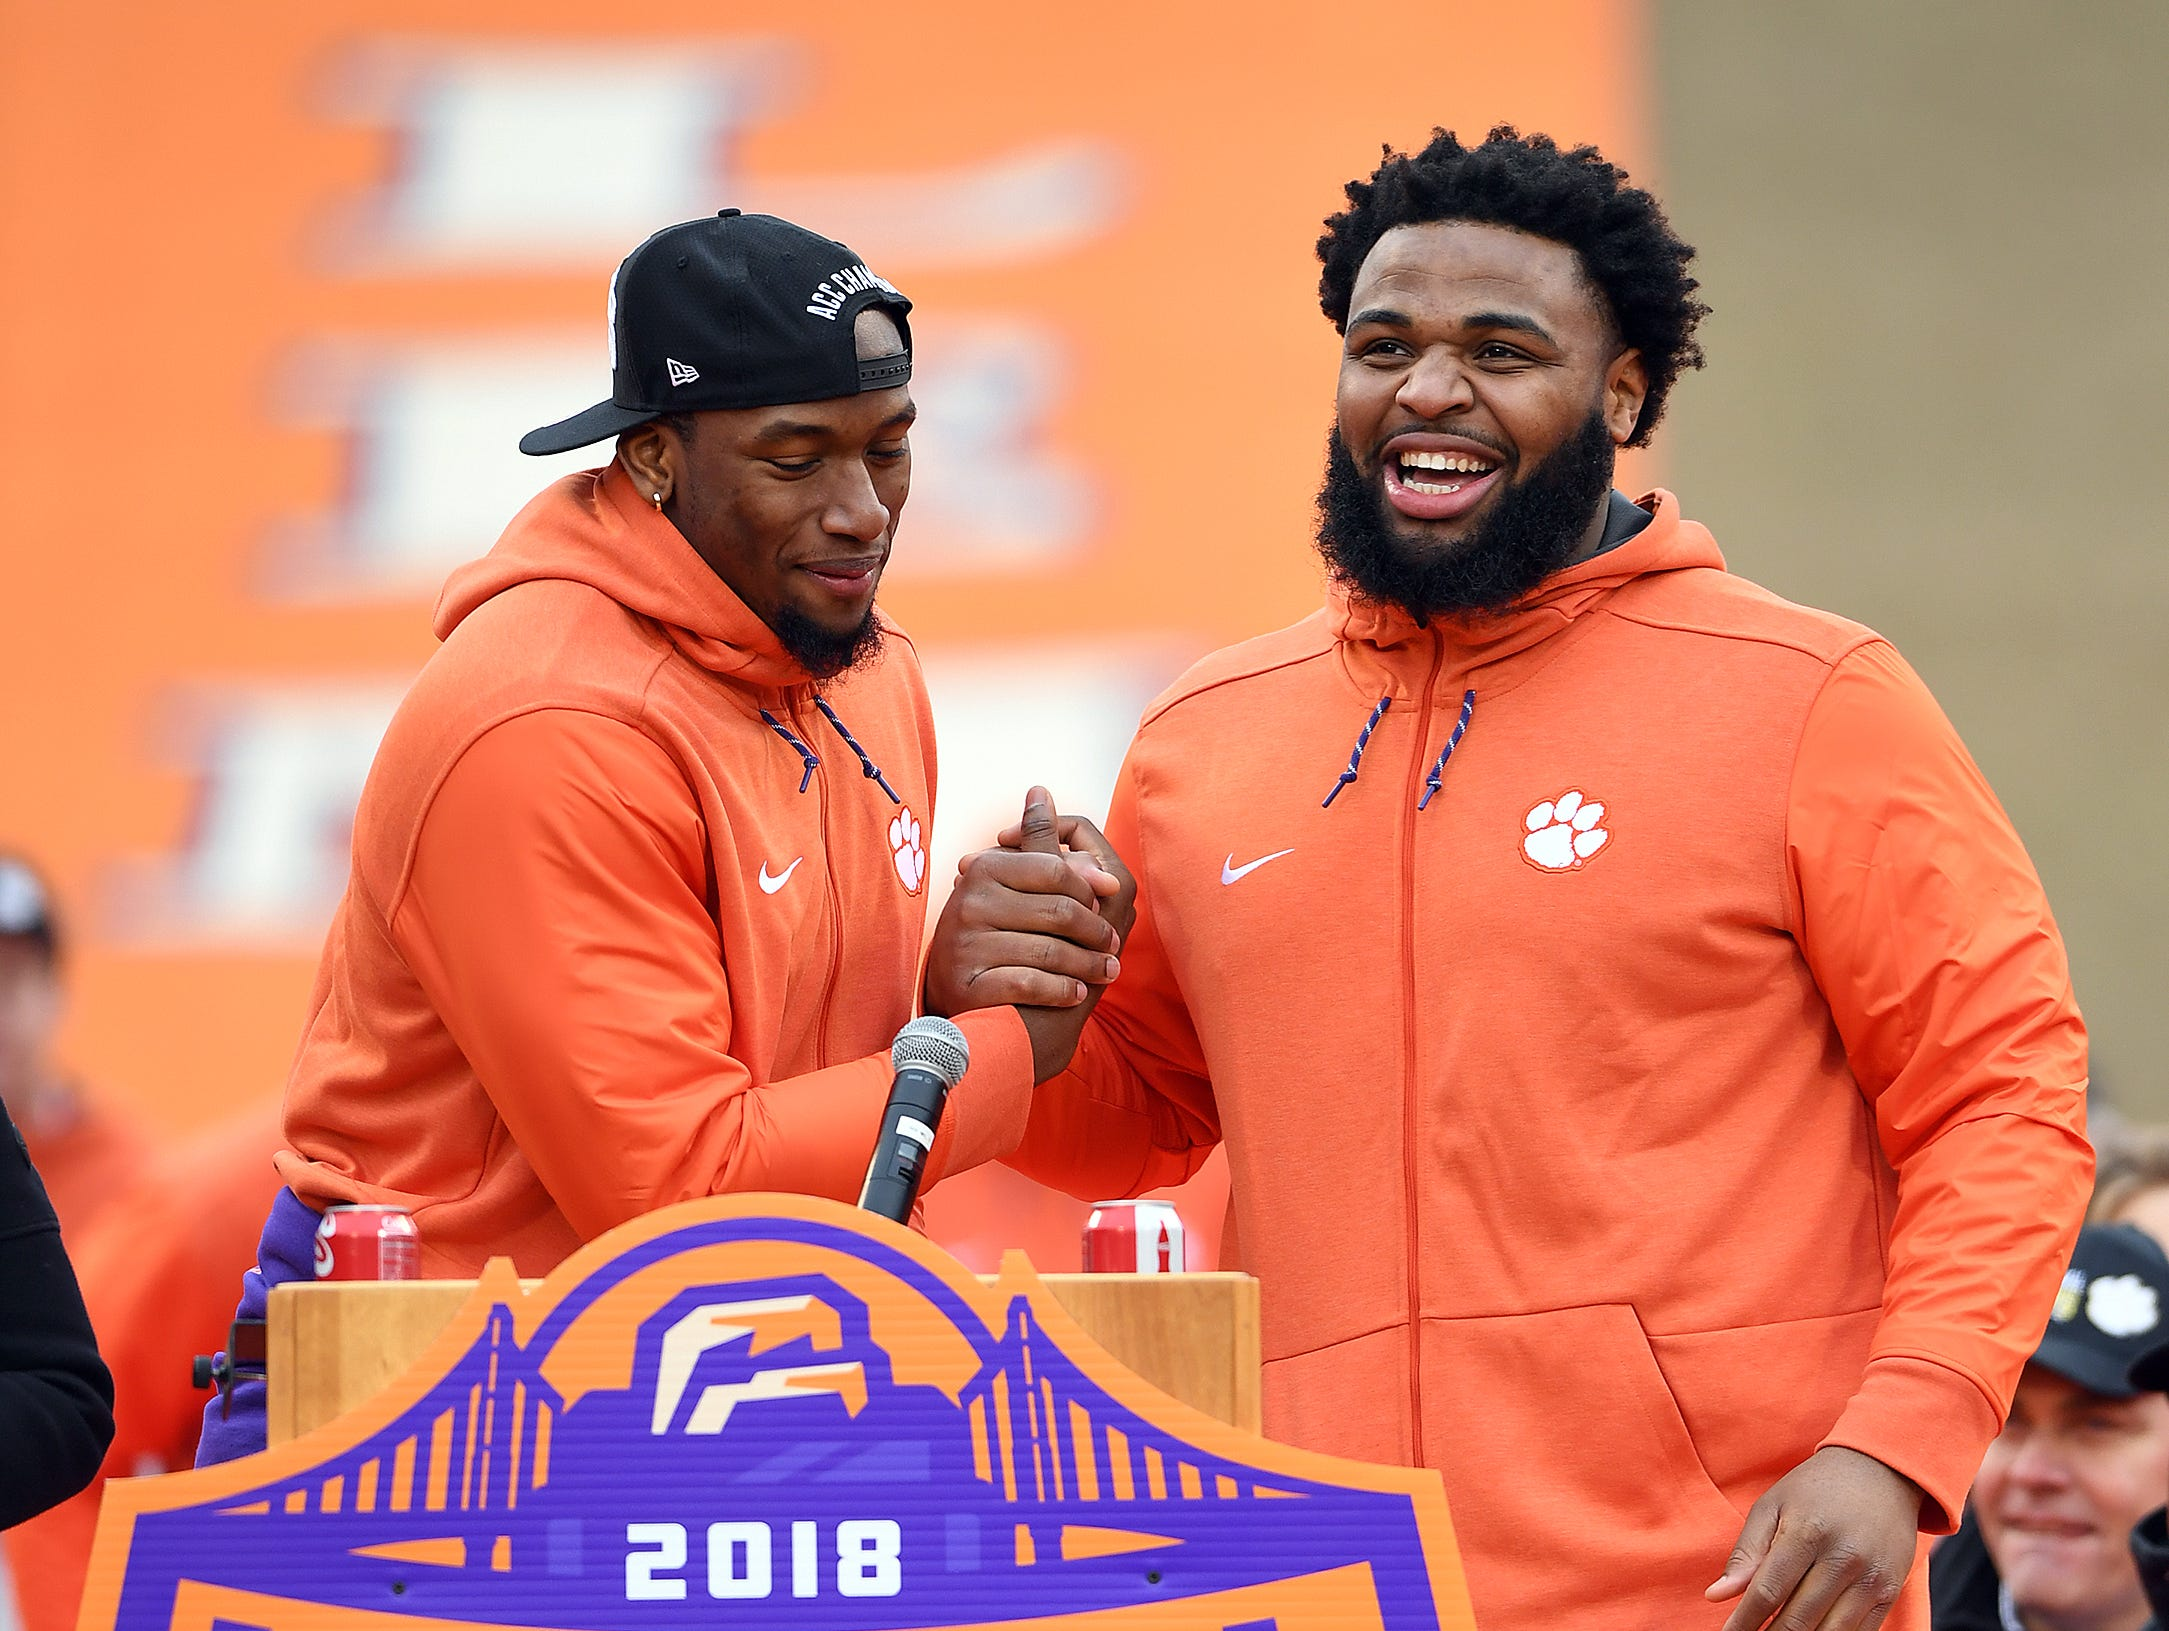 Clemson defensive linemen Clelin Ferrell, left, and Christian Wilkins during the Tigers National Championship celebration Saturday, January 12, 2019 at Clemson's Memorial Stadium.